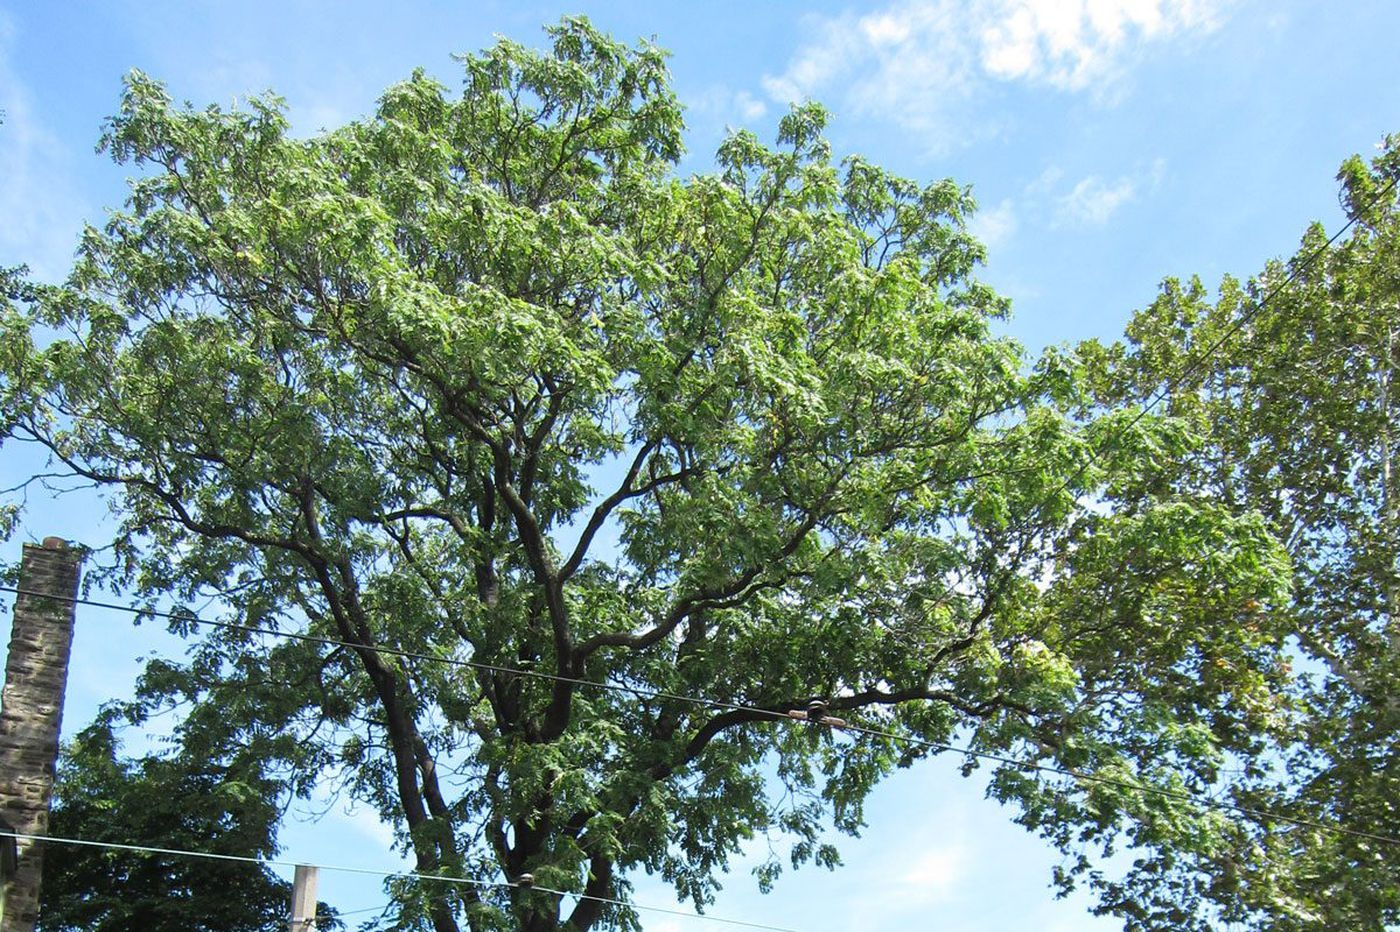 Why the tree of heaven spreads so devilishly and harms Pa. forests